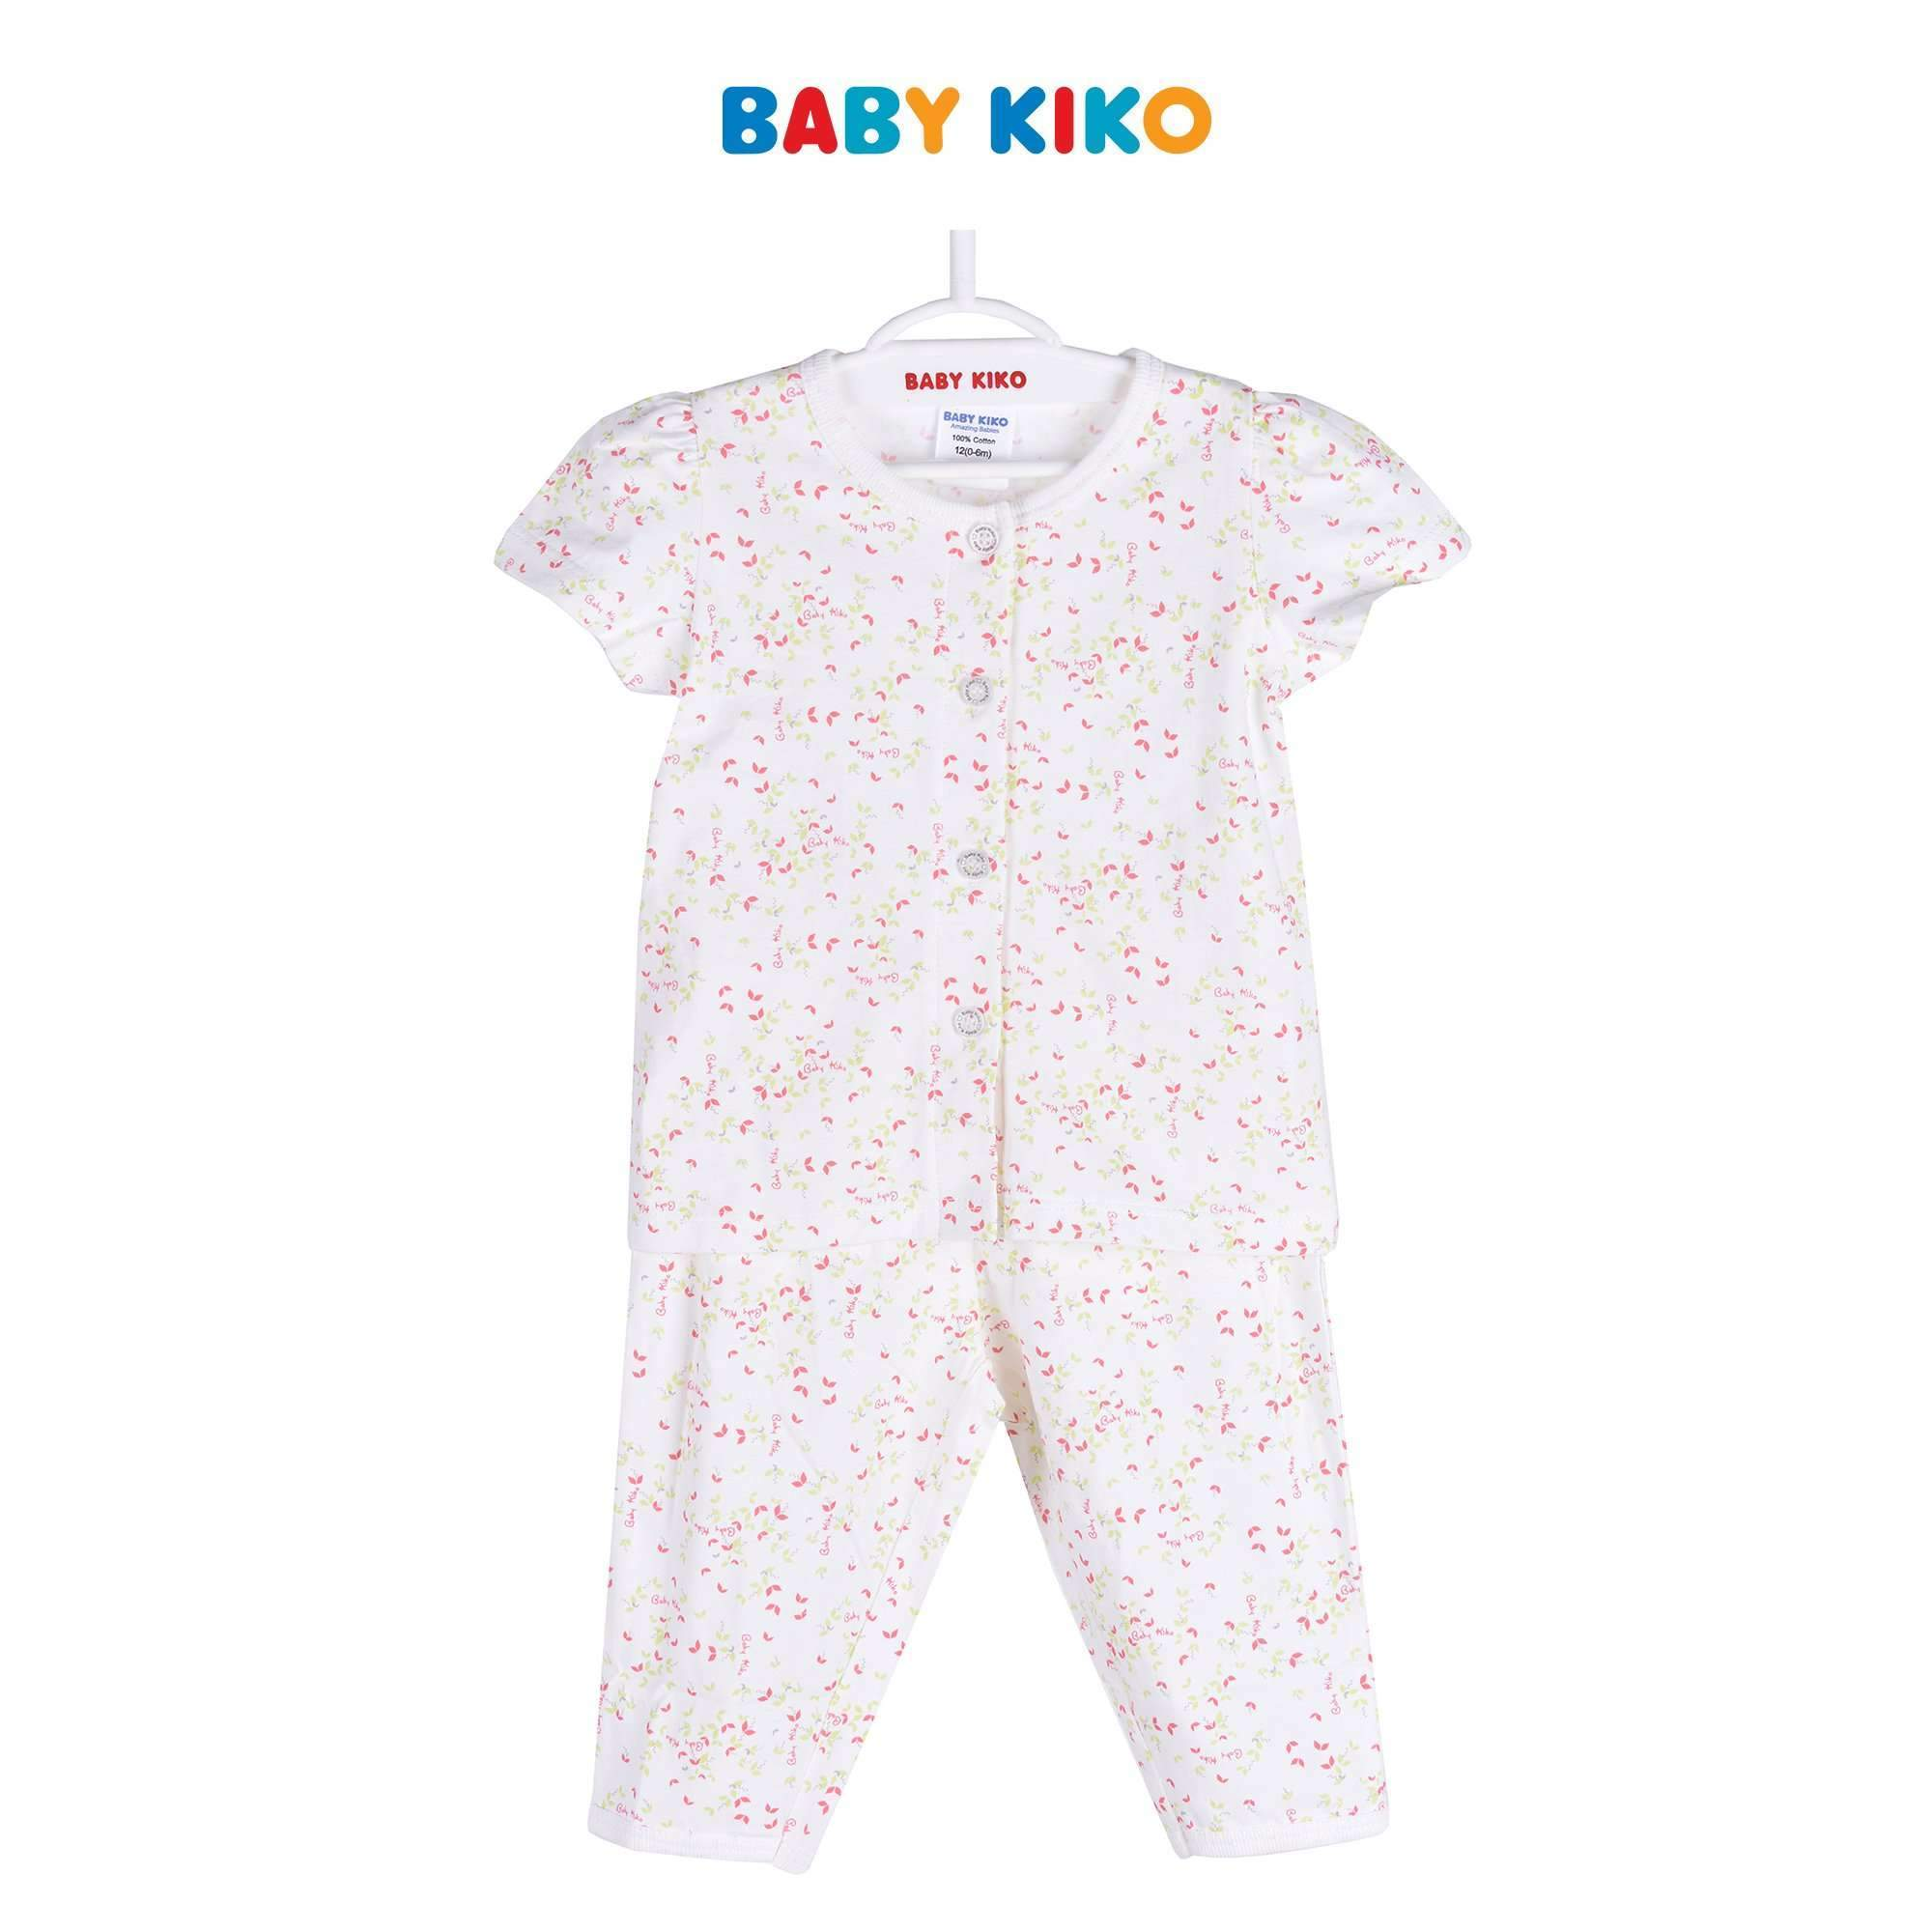 Baby KIKO Baby Girl Short Sleeve Long Pants Suit - Off White 320081-421 : Buy Baby KIKO online at CMG.MY